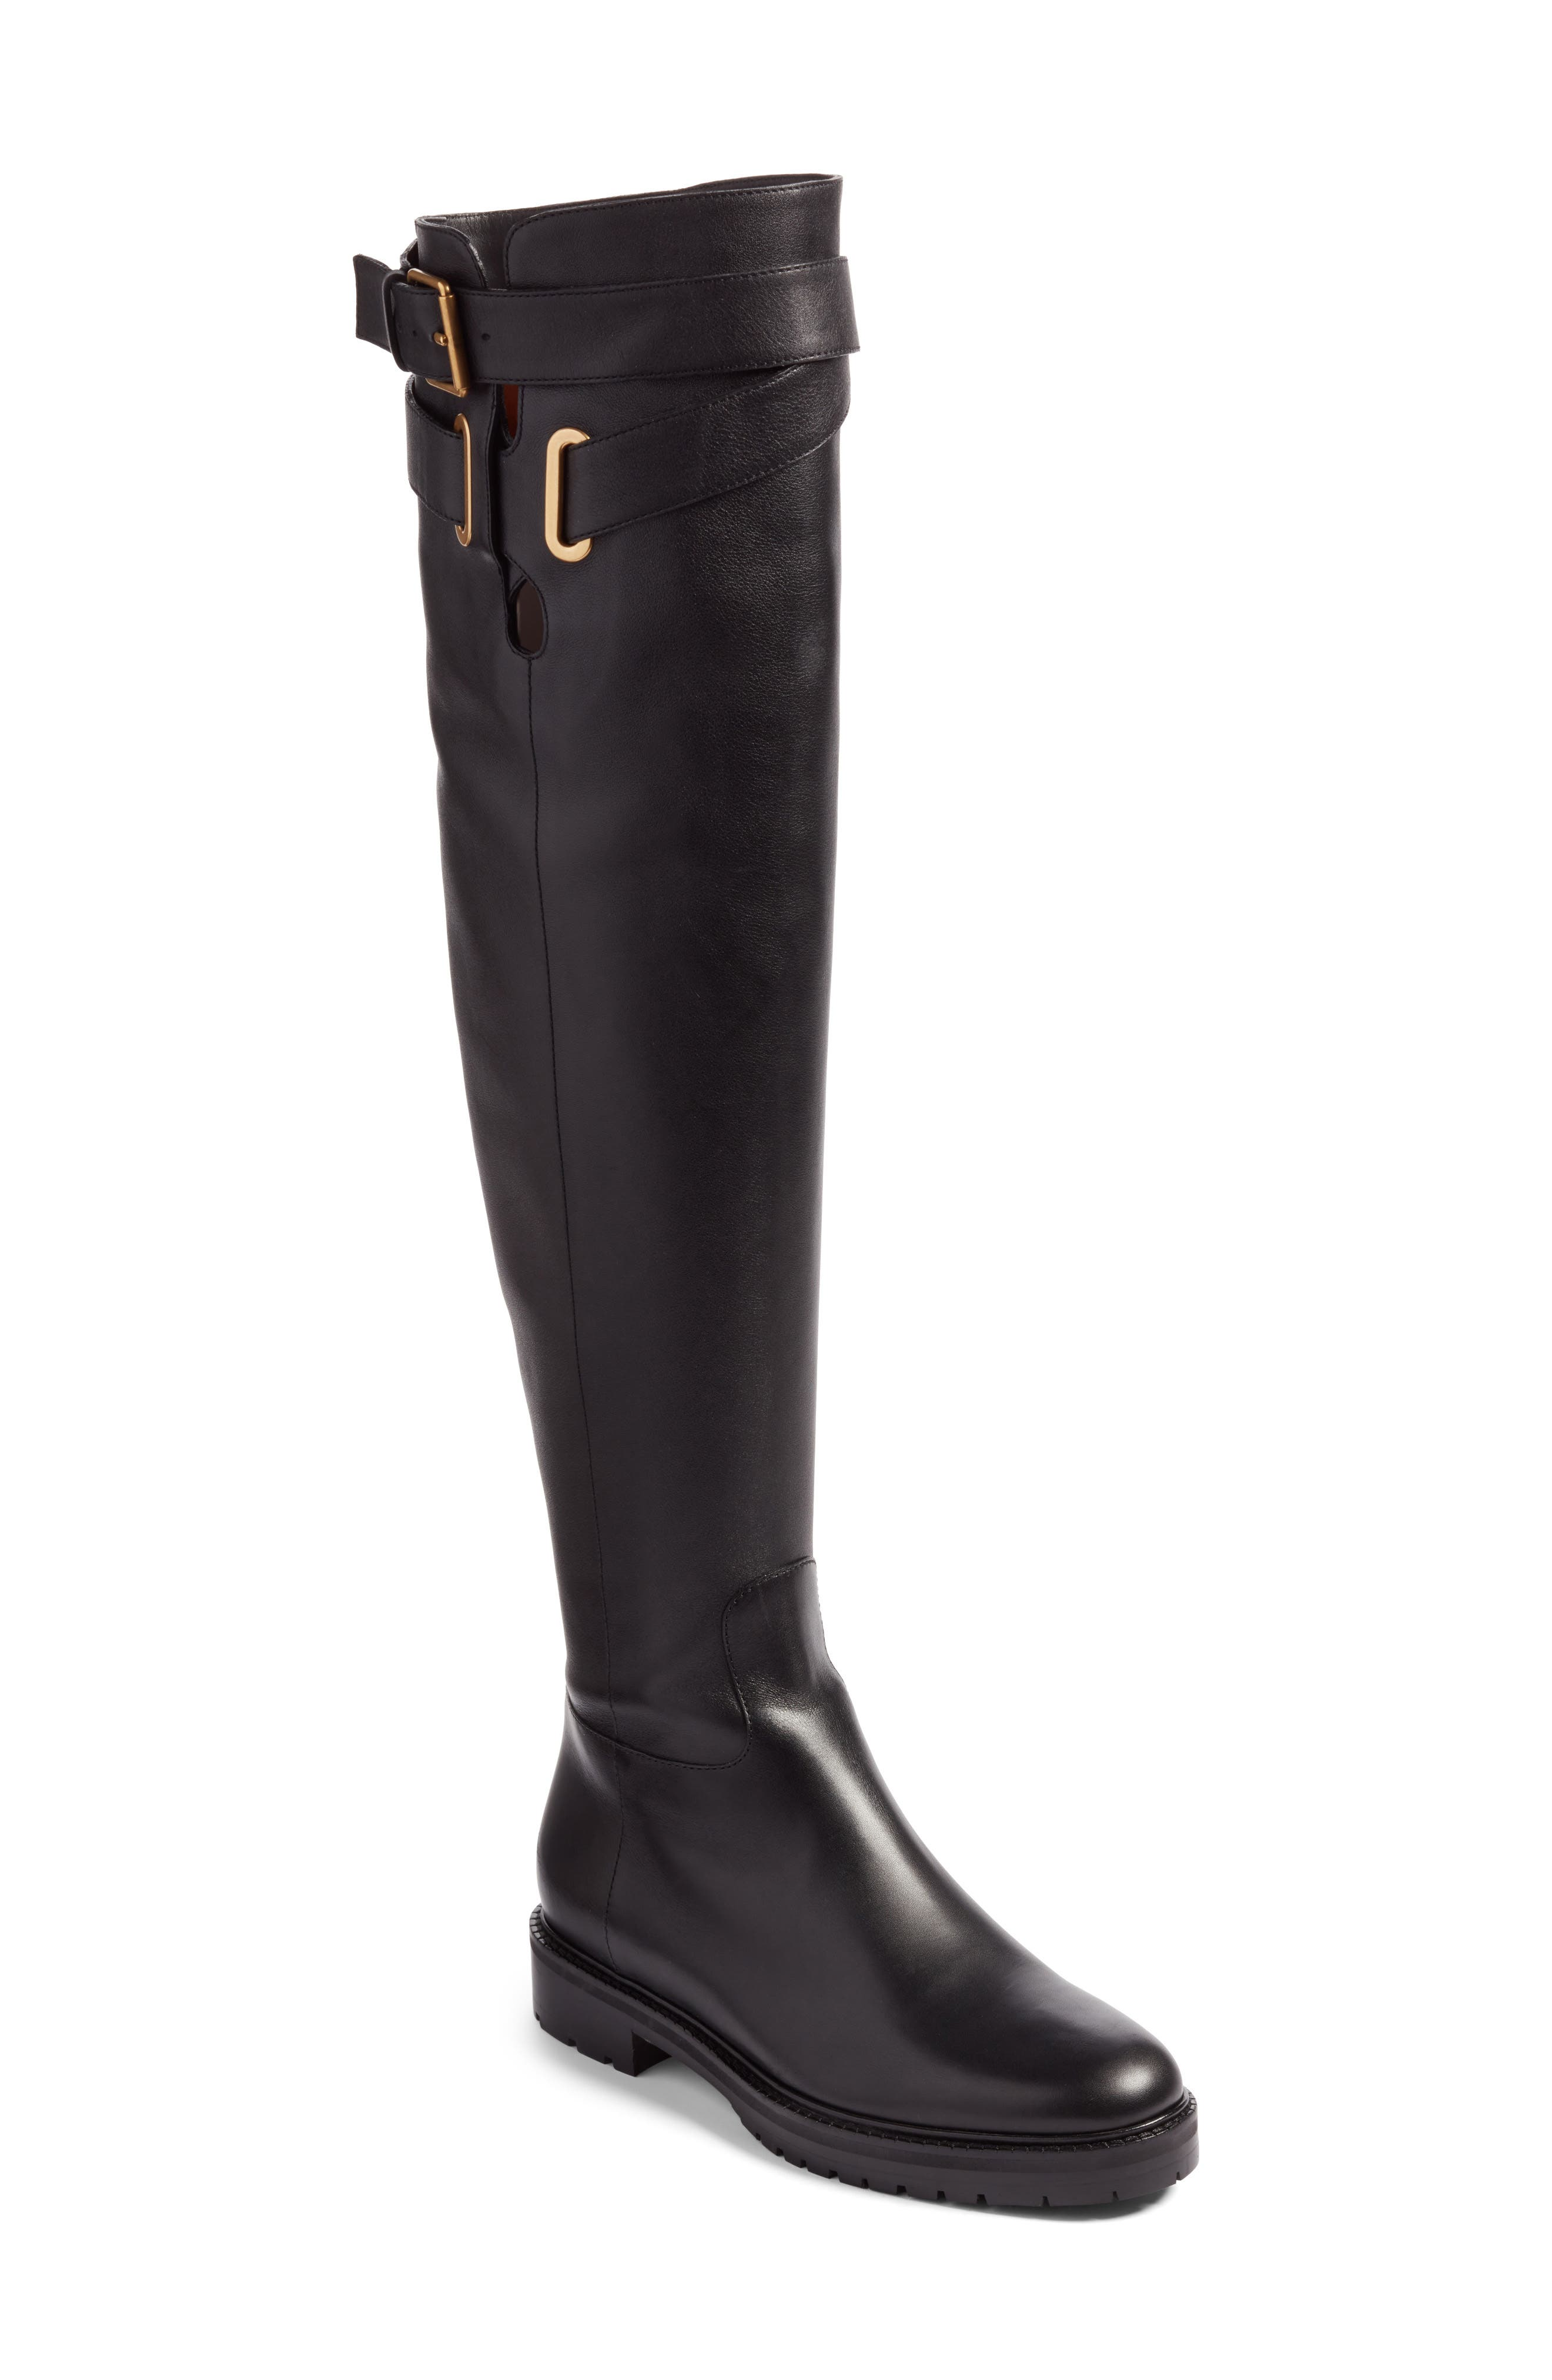 Bowrap Over the Knee Boot,                         Main,                         color, 001